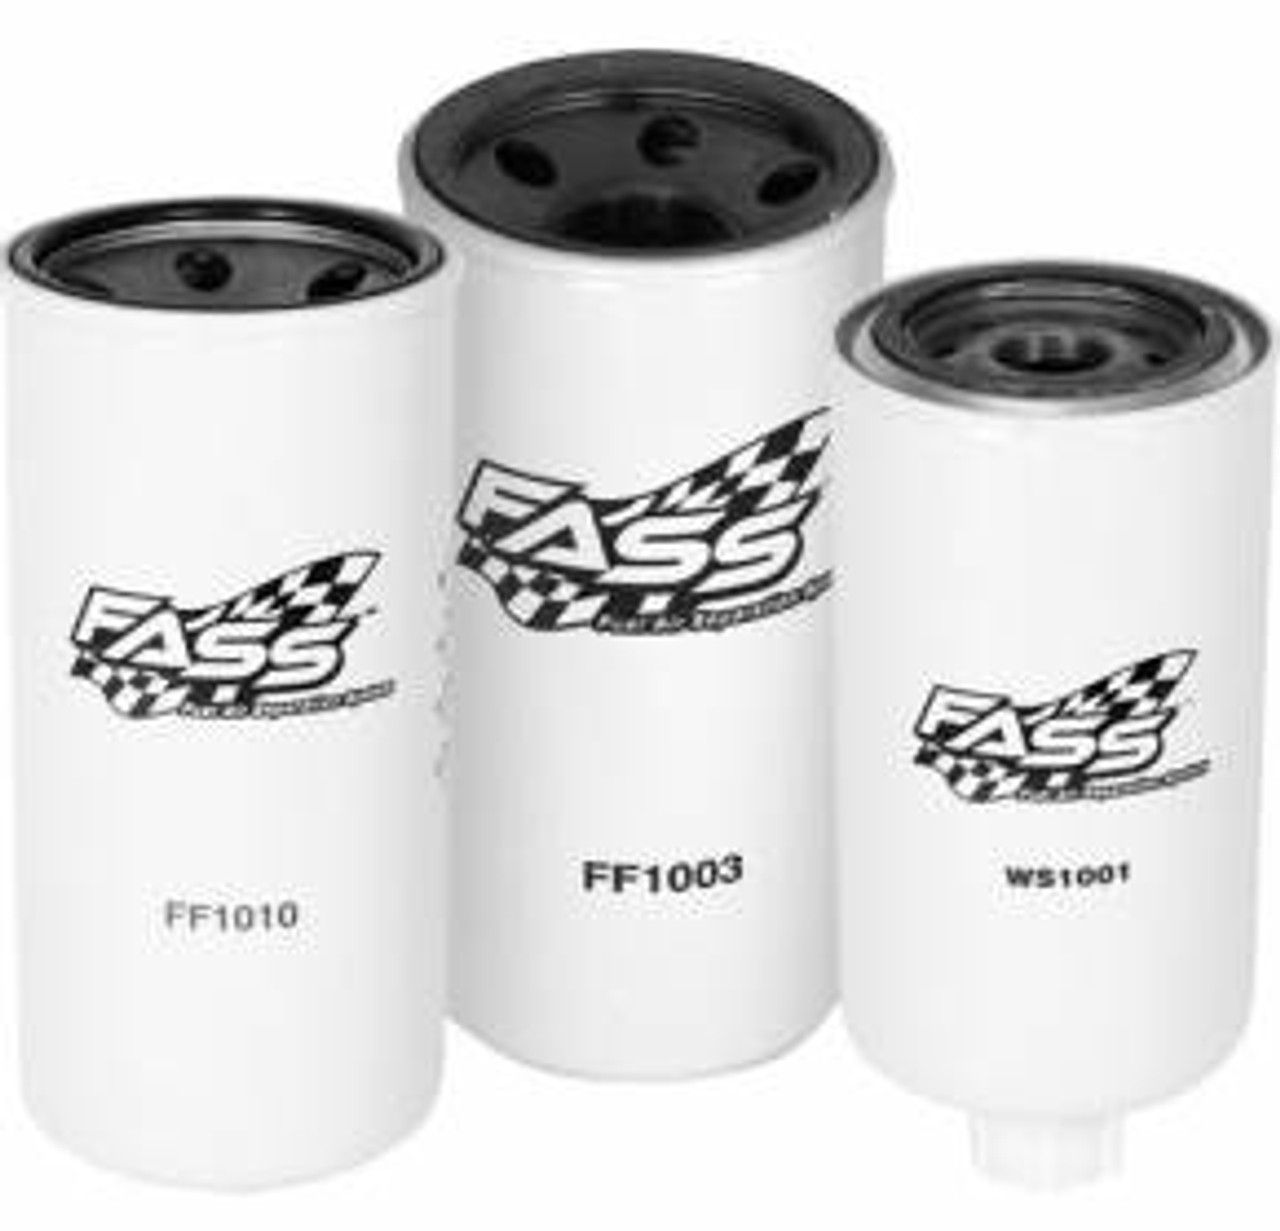 FASS HD Fuel Filter 3 Micron